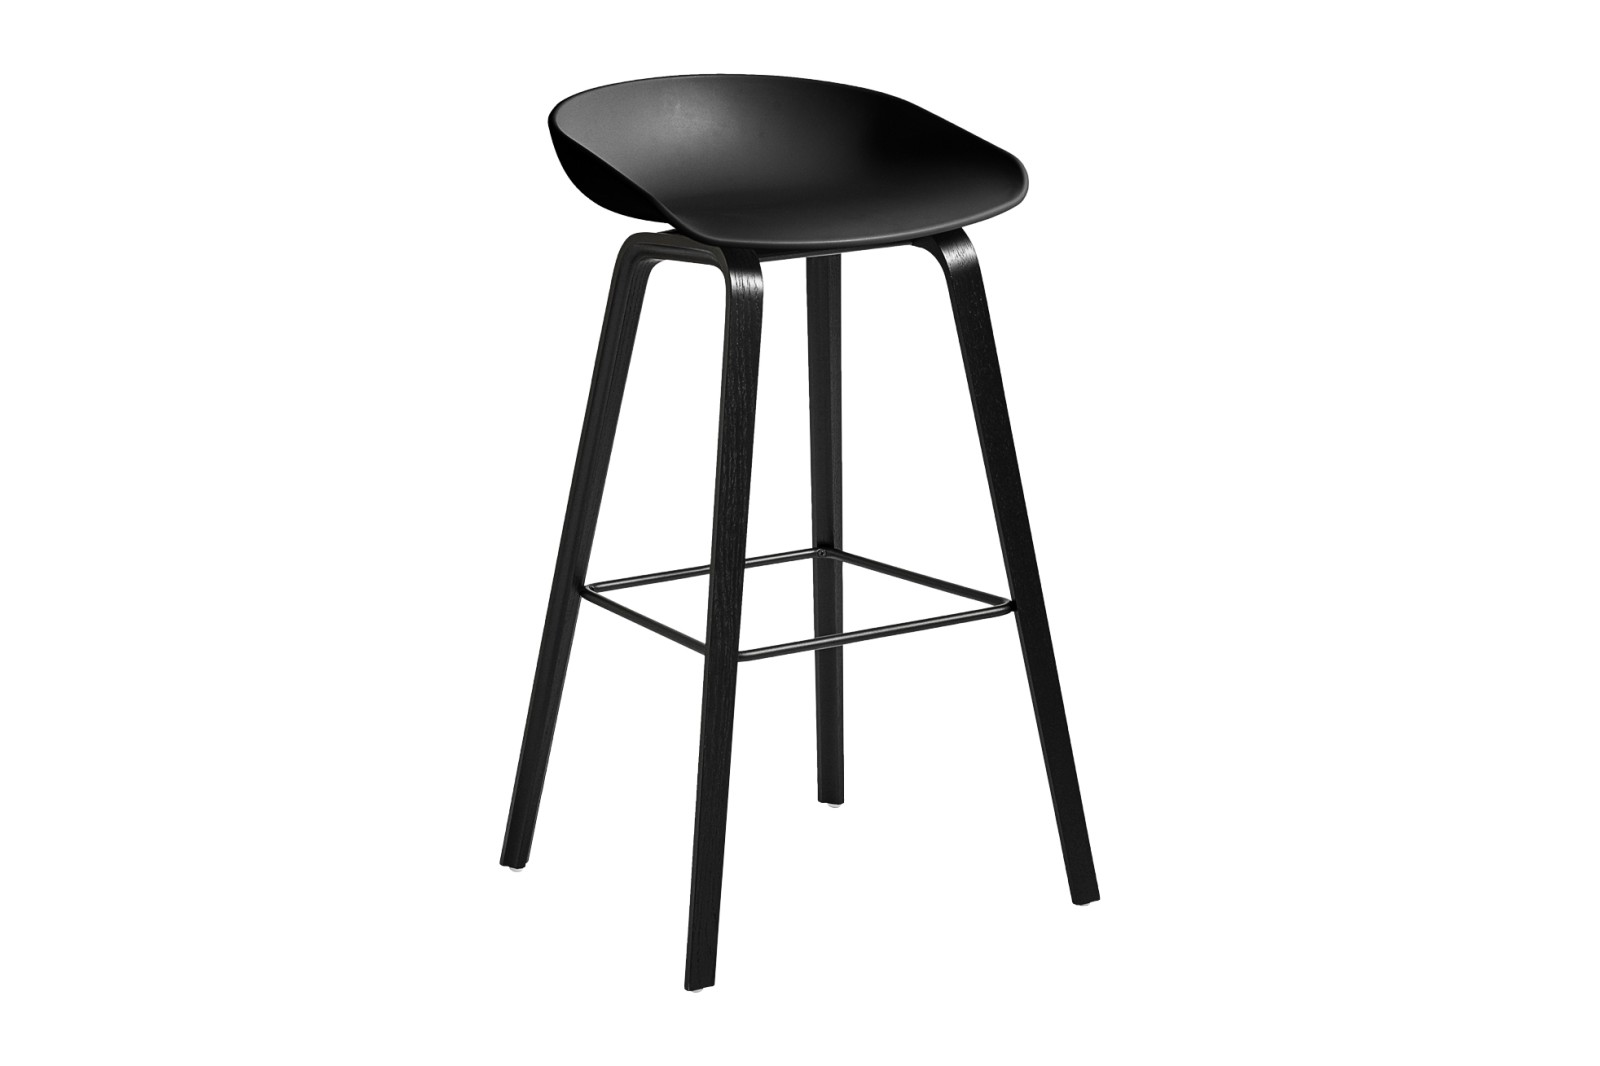 About A Stool AAS32 Black Stained Oak Base, Black Seat, High, Black Powder Coated Steel